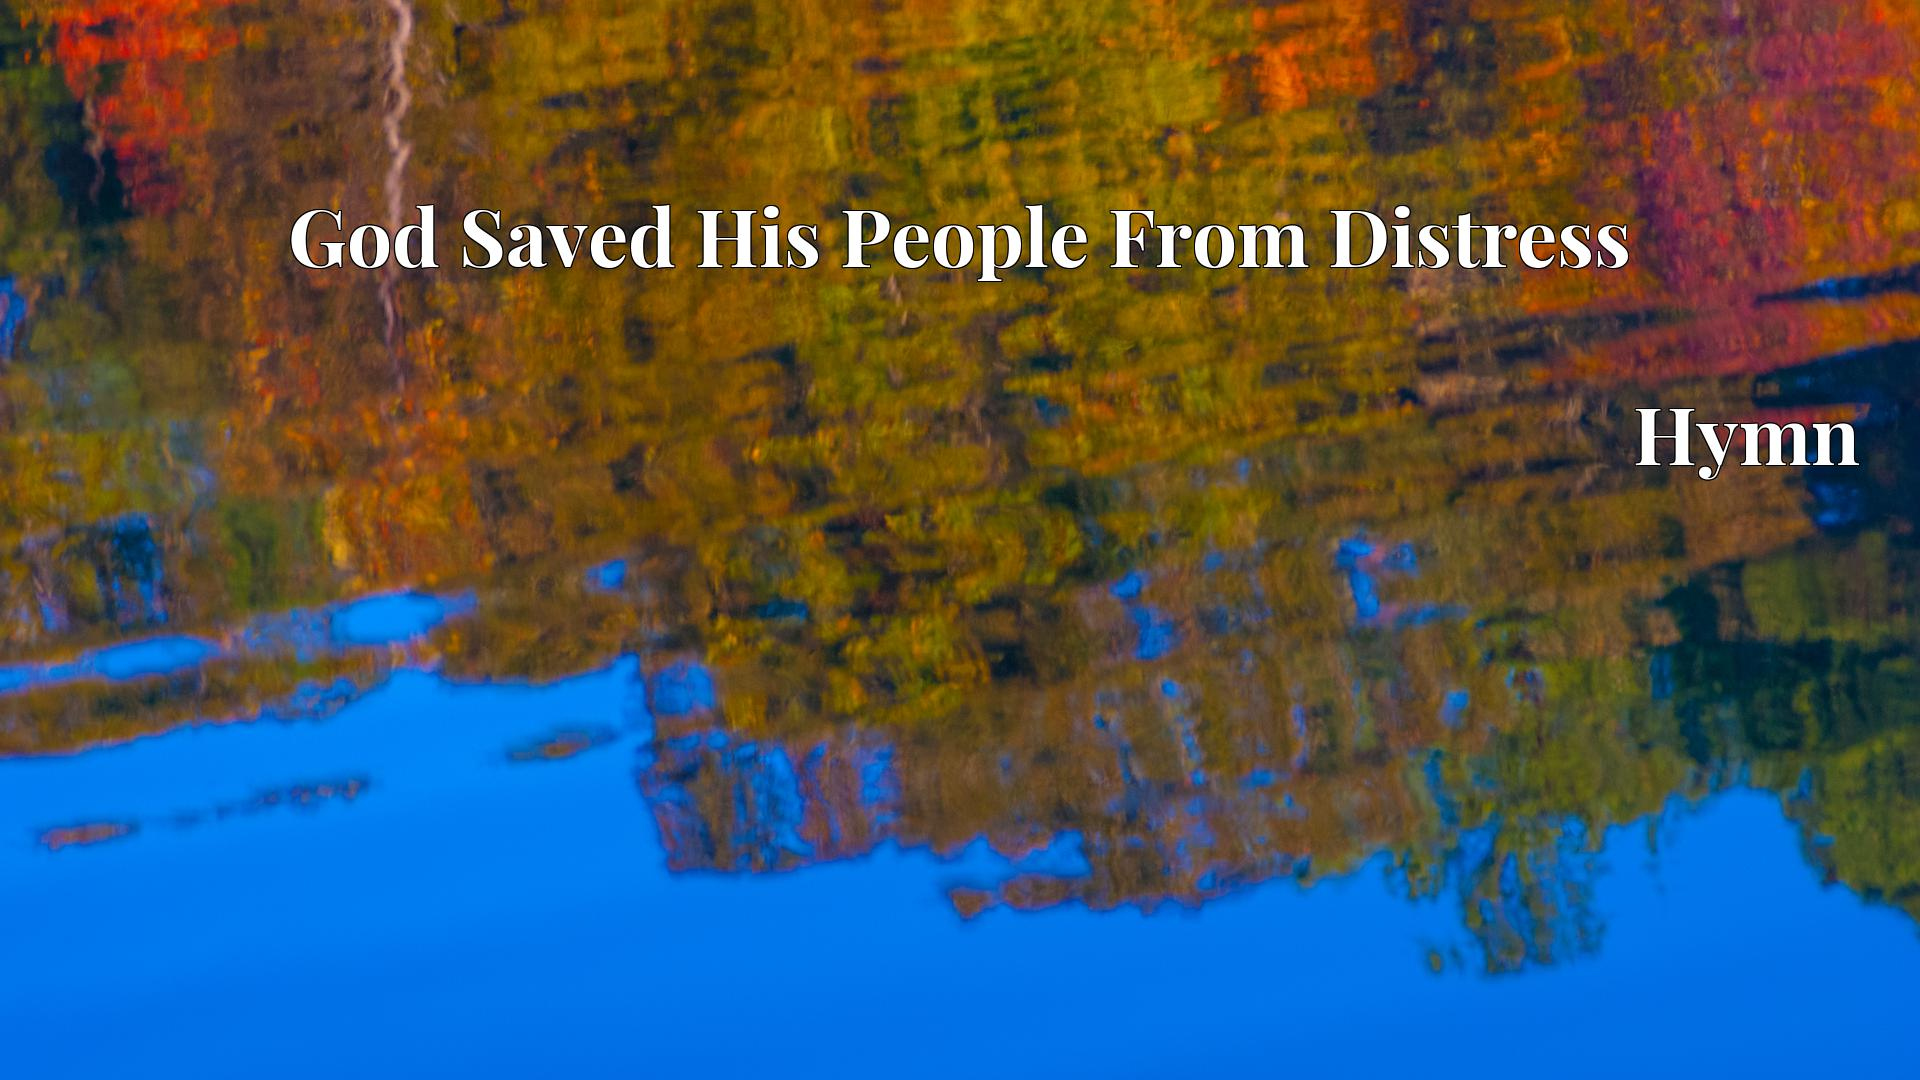 God Saved His People From Distress - Hymn